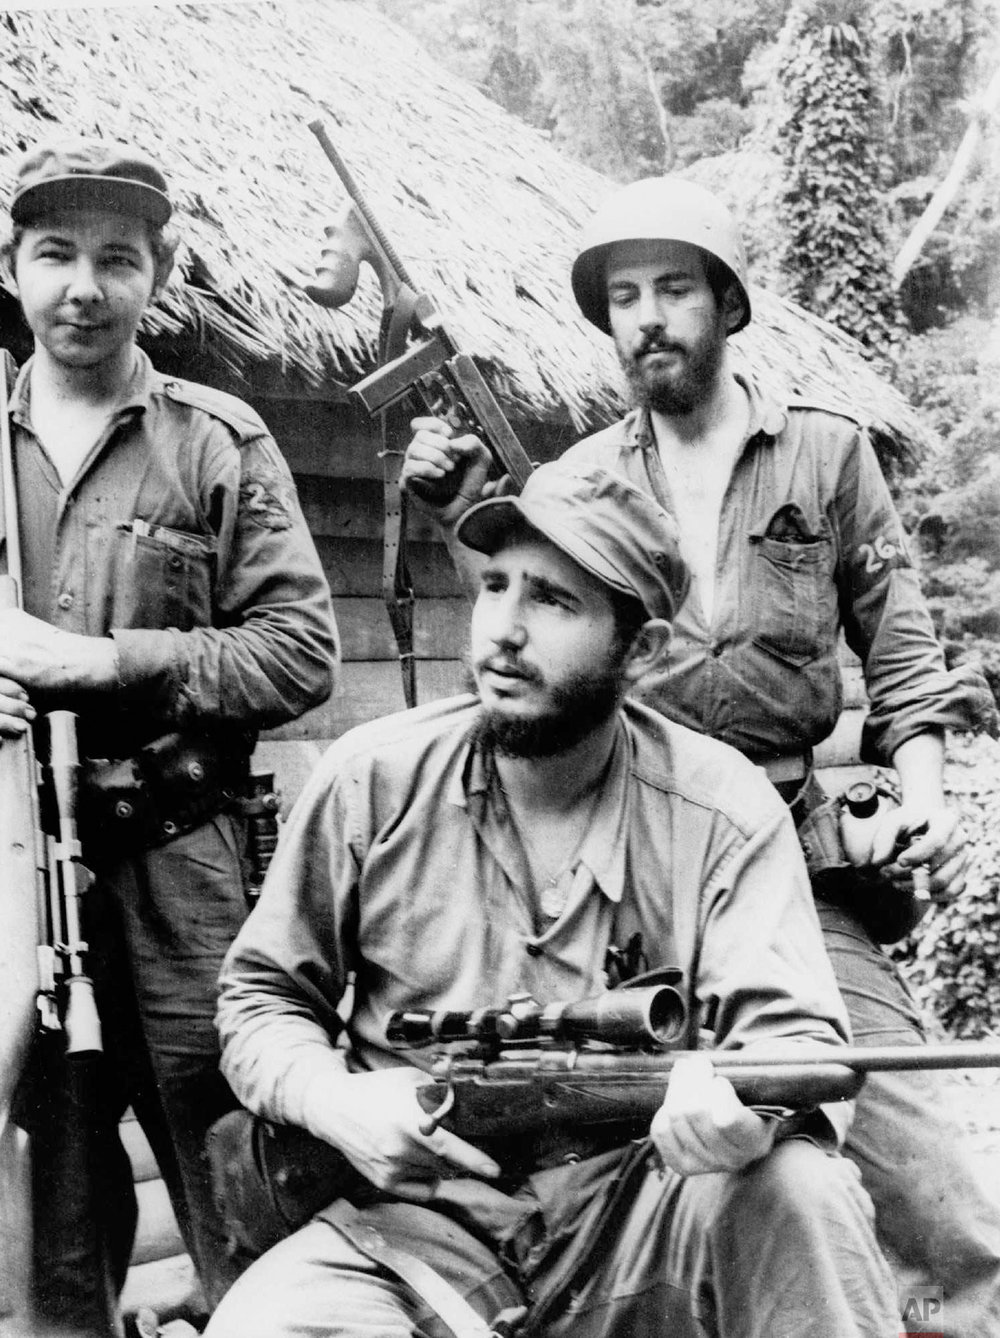 Fidel Castro, the young anti-Batista guerrilla leader, center, his brother Raul Castro, left, and Camilo Cienfuegos, pose for a photo while in the mountains of eastern Cuba, March 14, 1957. Fidel led his young guerrillas to an improbable victory in 1959. (AP Photo/Andrew St. George)